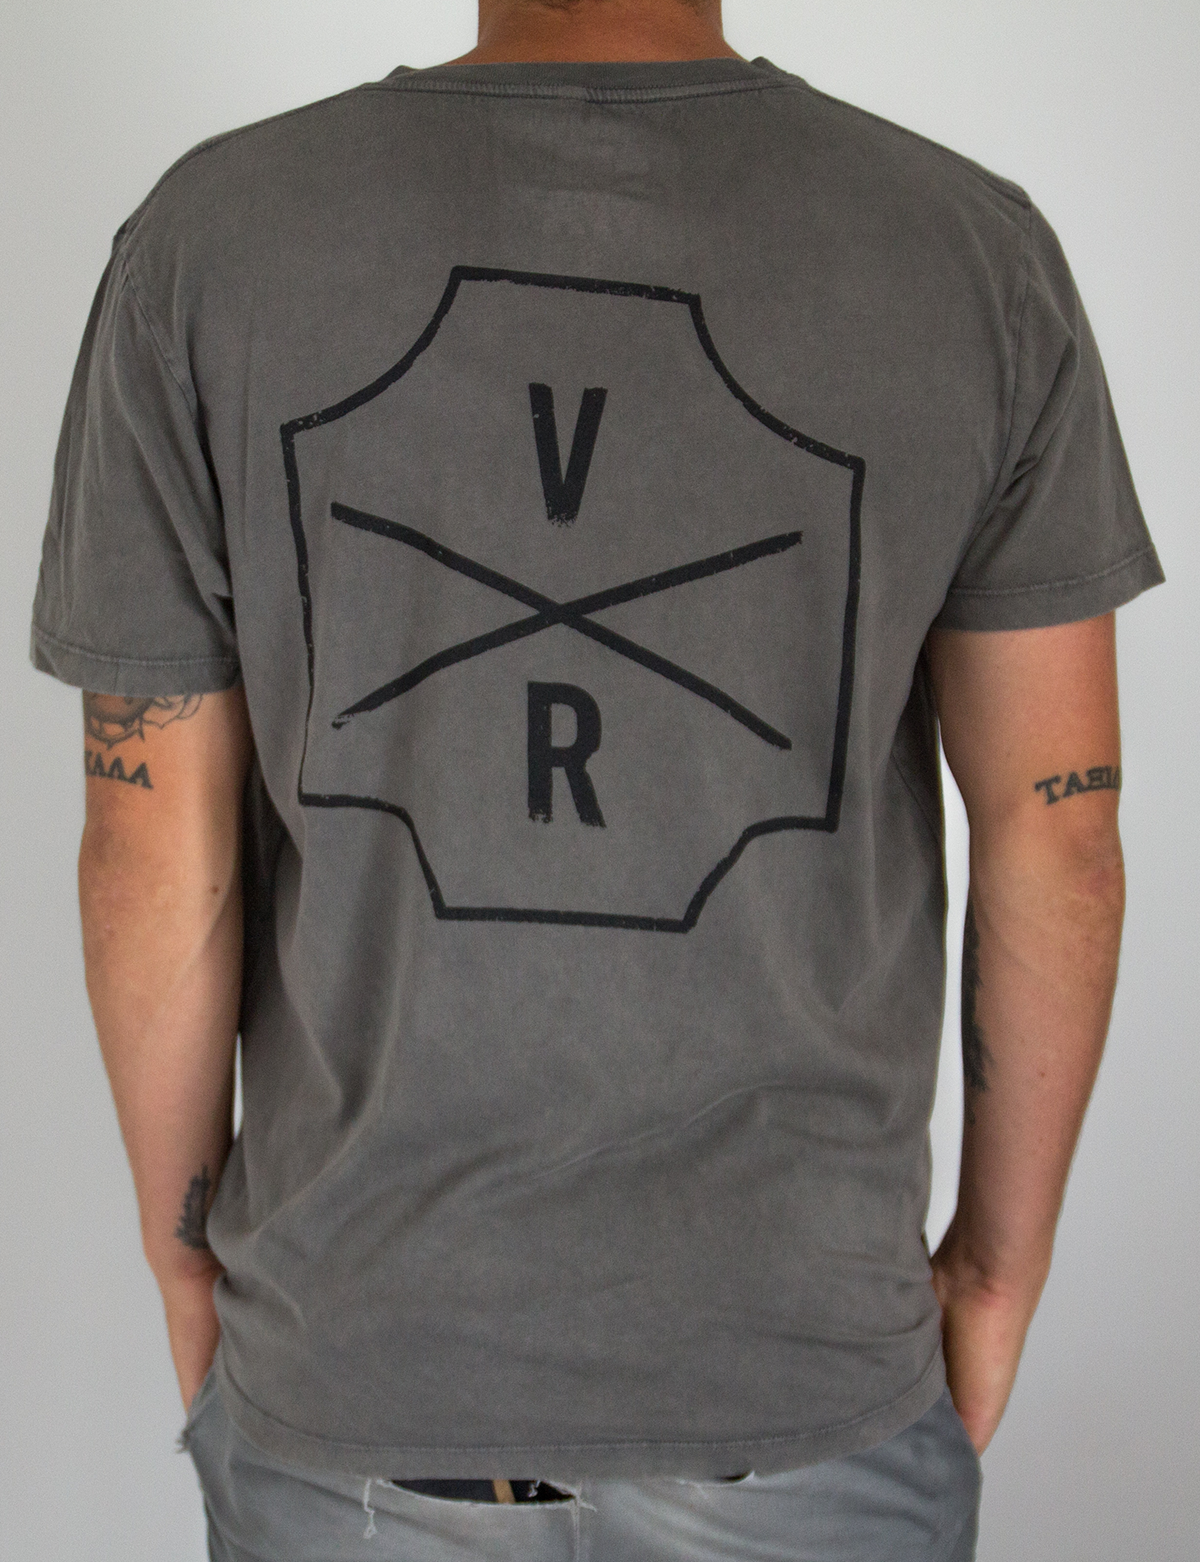 Original Tee - Stone washed grey